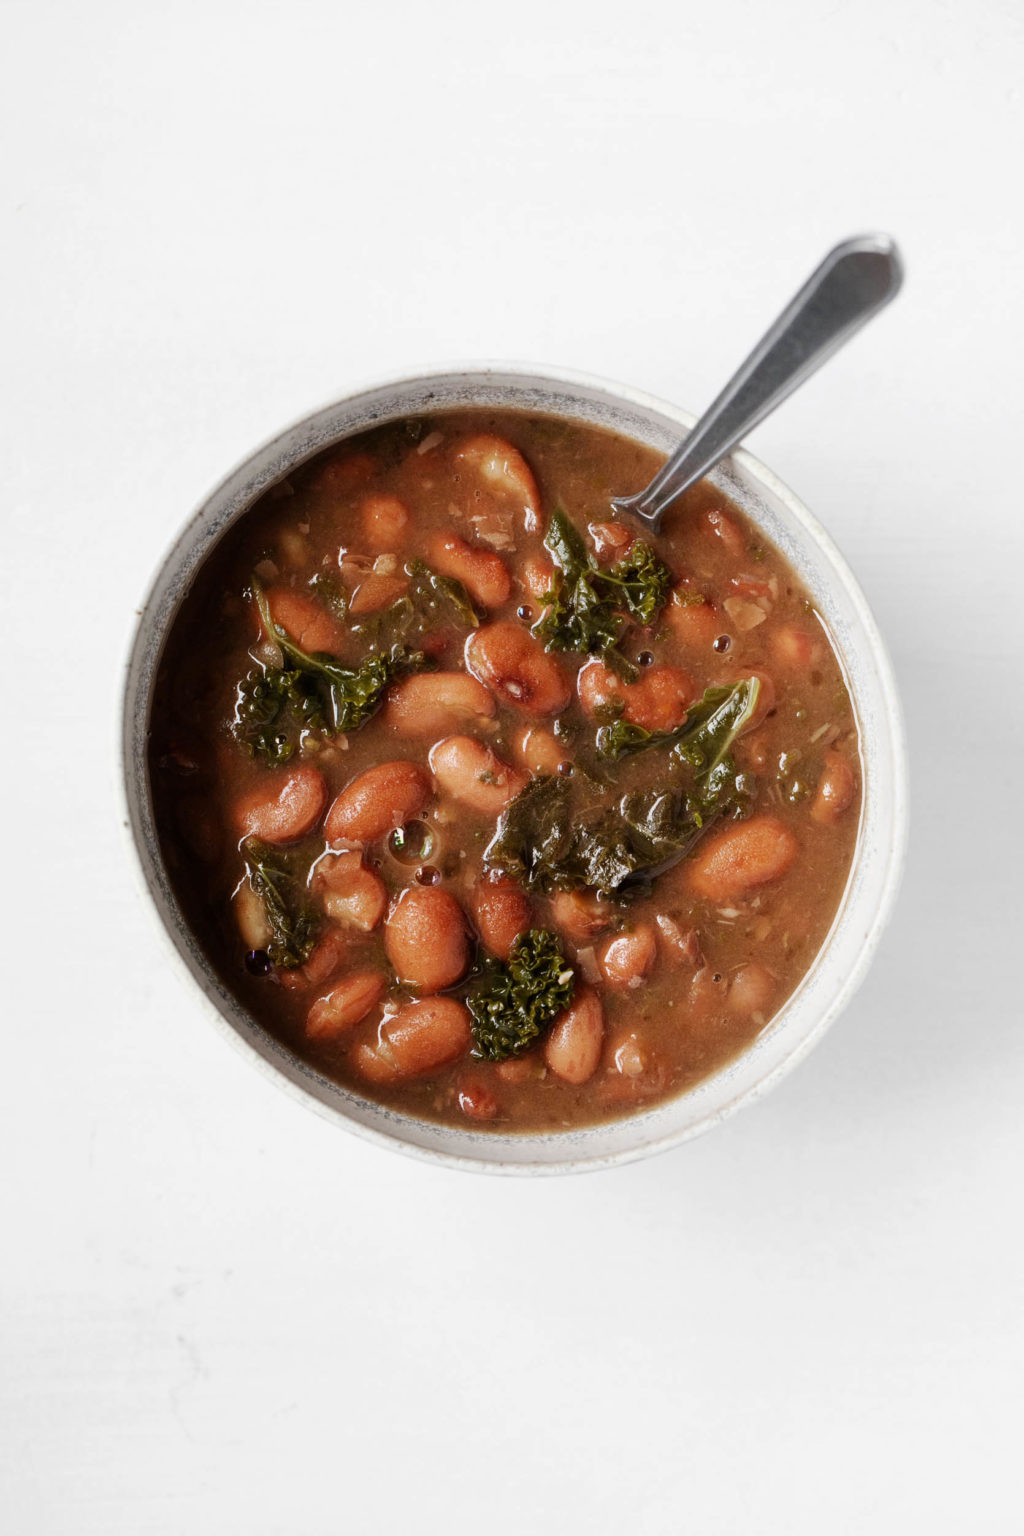 A white bowl is filled with soupy cooked cranberry beans and kale.